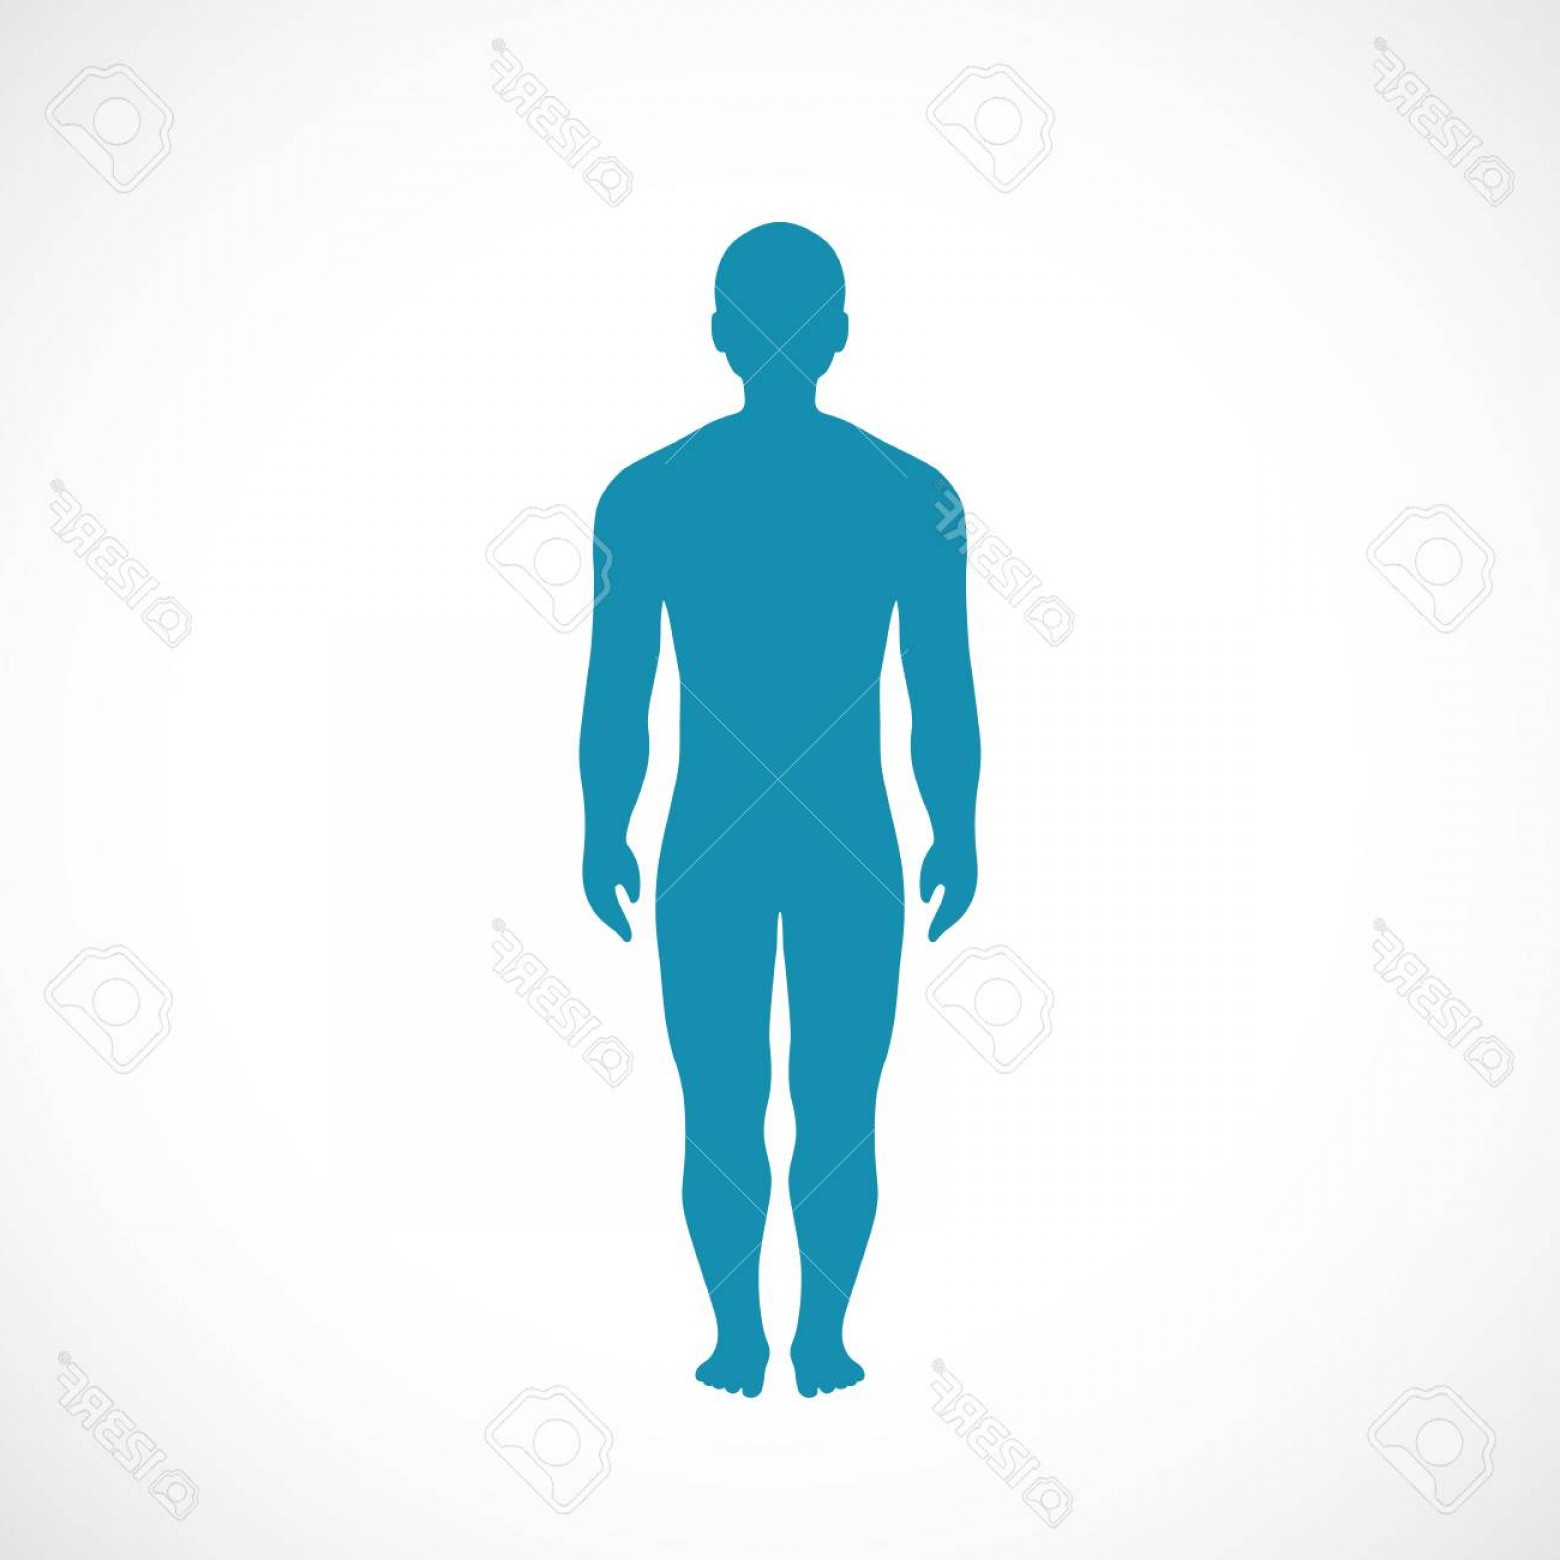 Human Body Outline Vector: Photostock Vector Human Body Silhouette Vector Icon